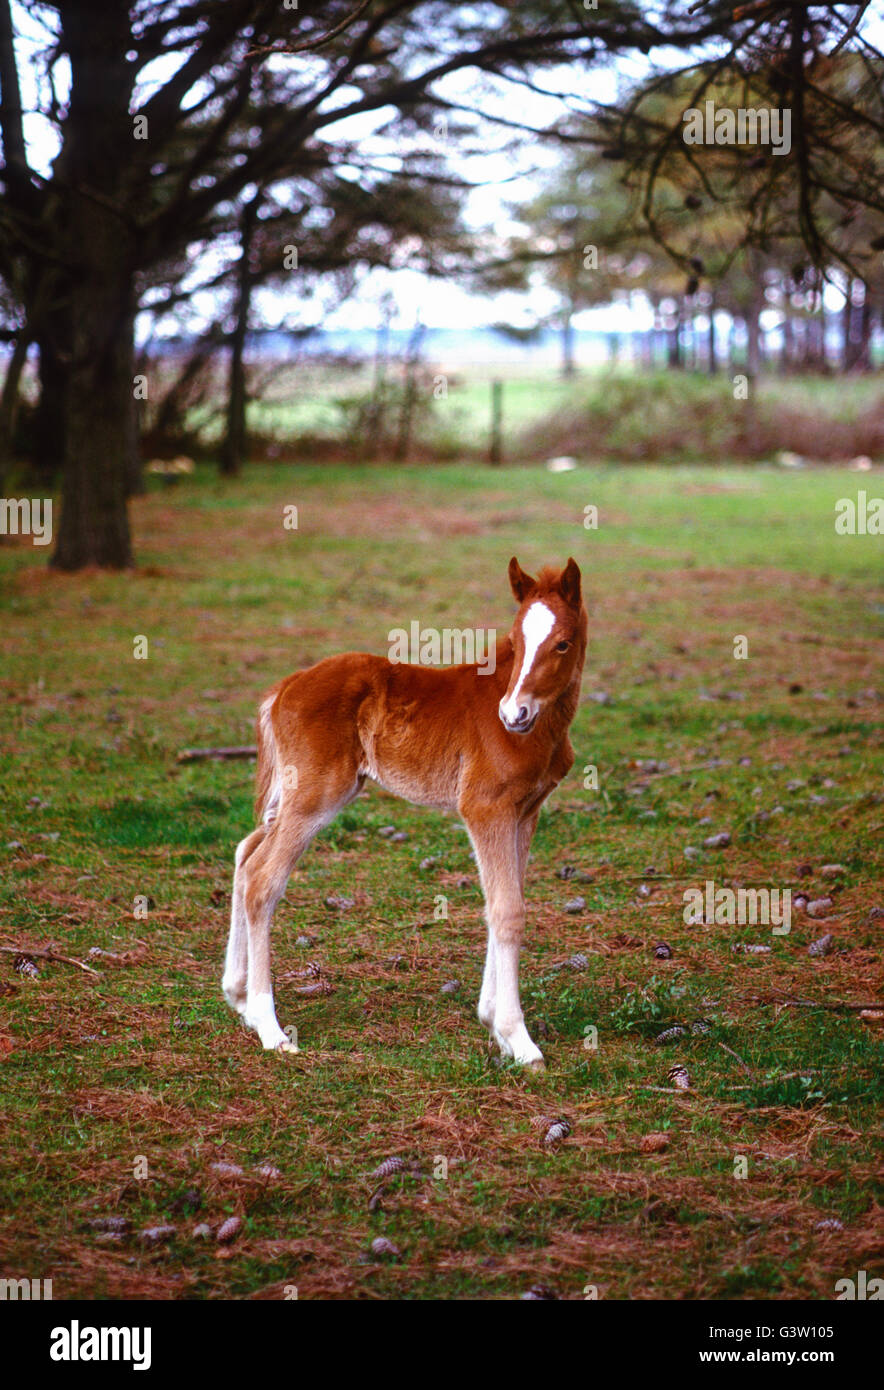 Young colt; wild horse (known as 'Ponies') in Chincoteague National Wildlife Refuge, Assateague Island, - Stock Image